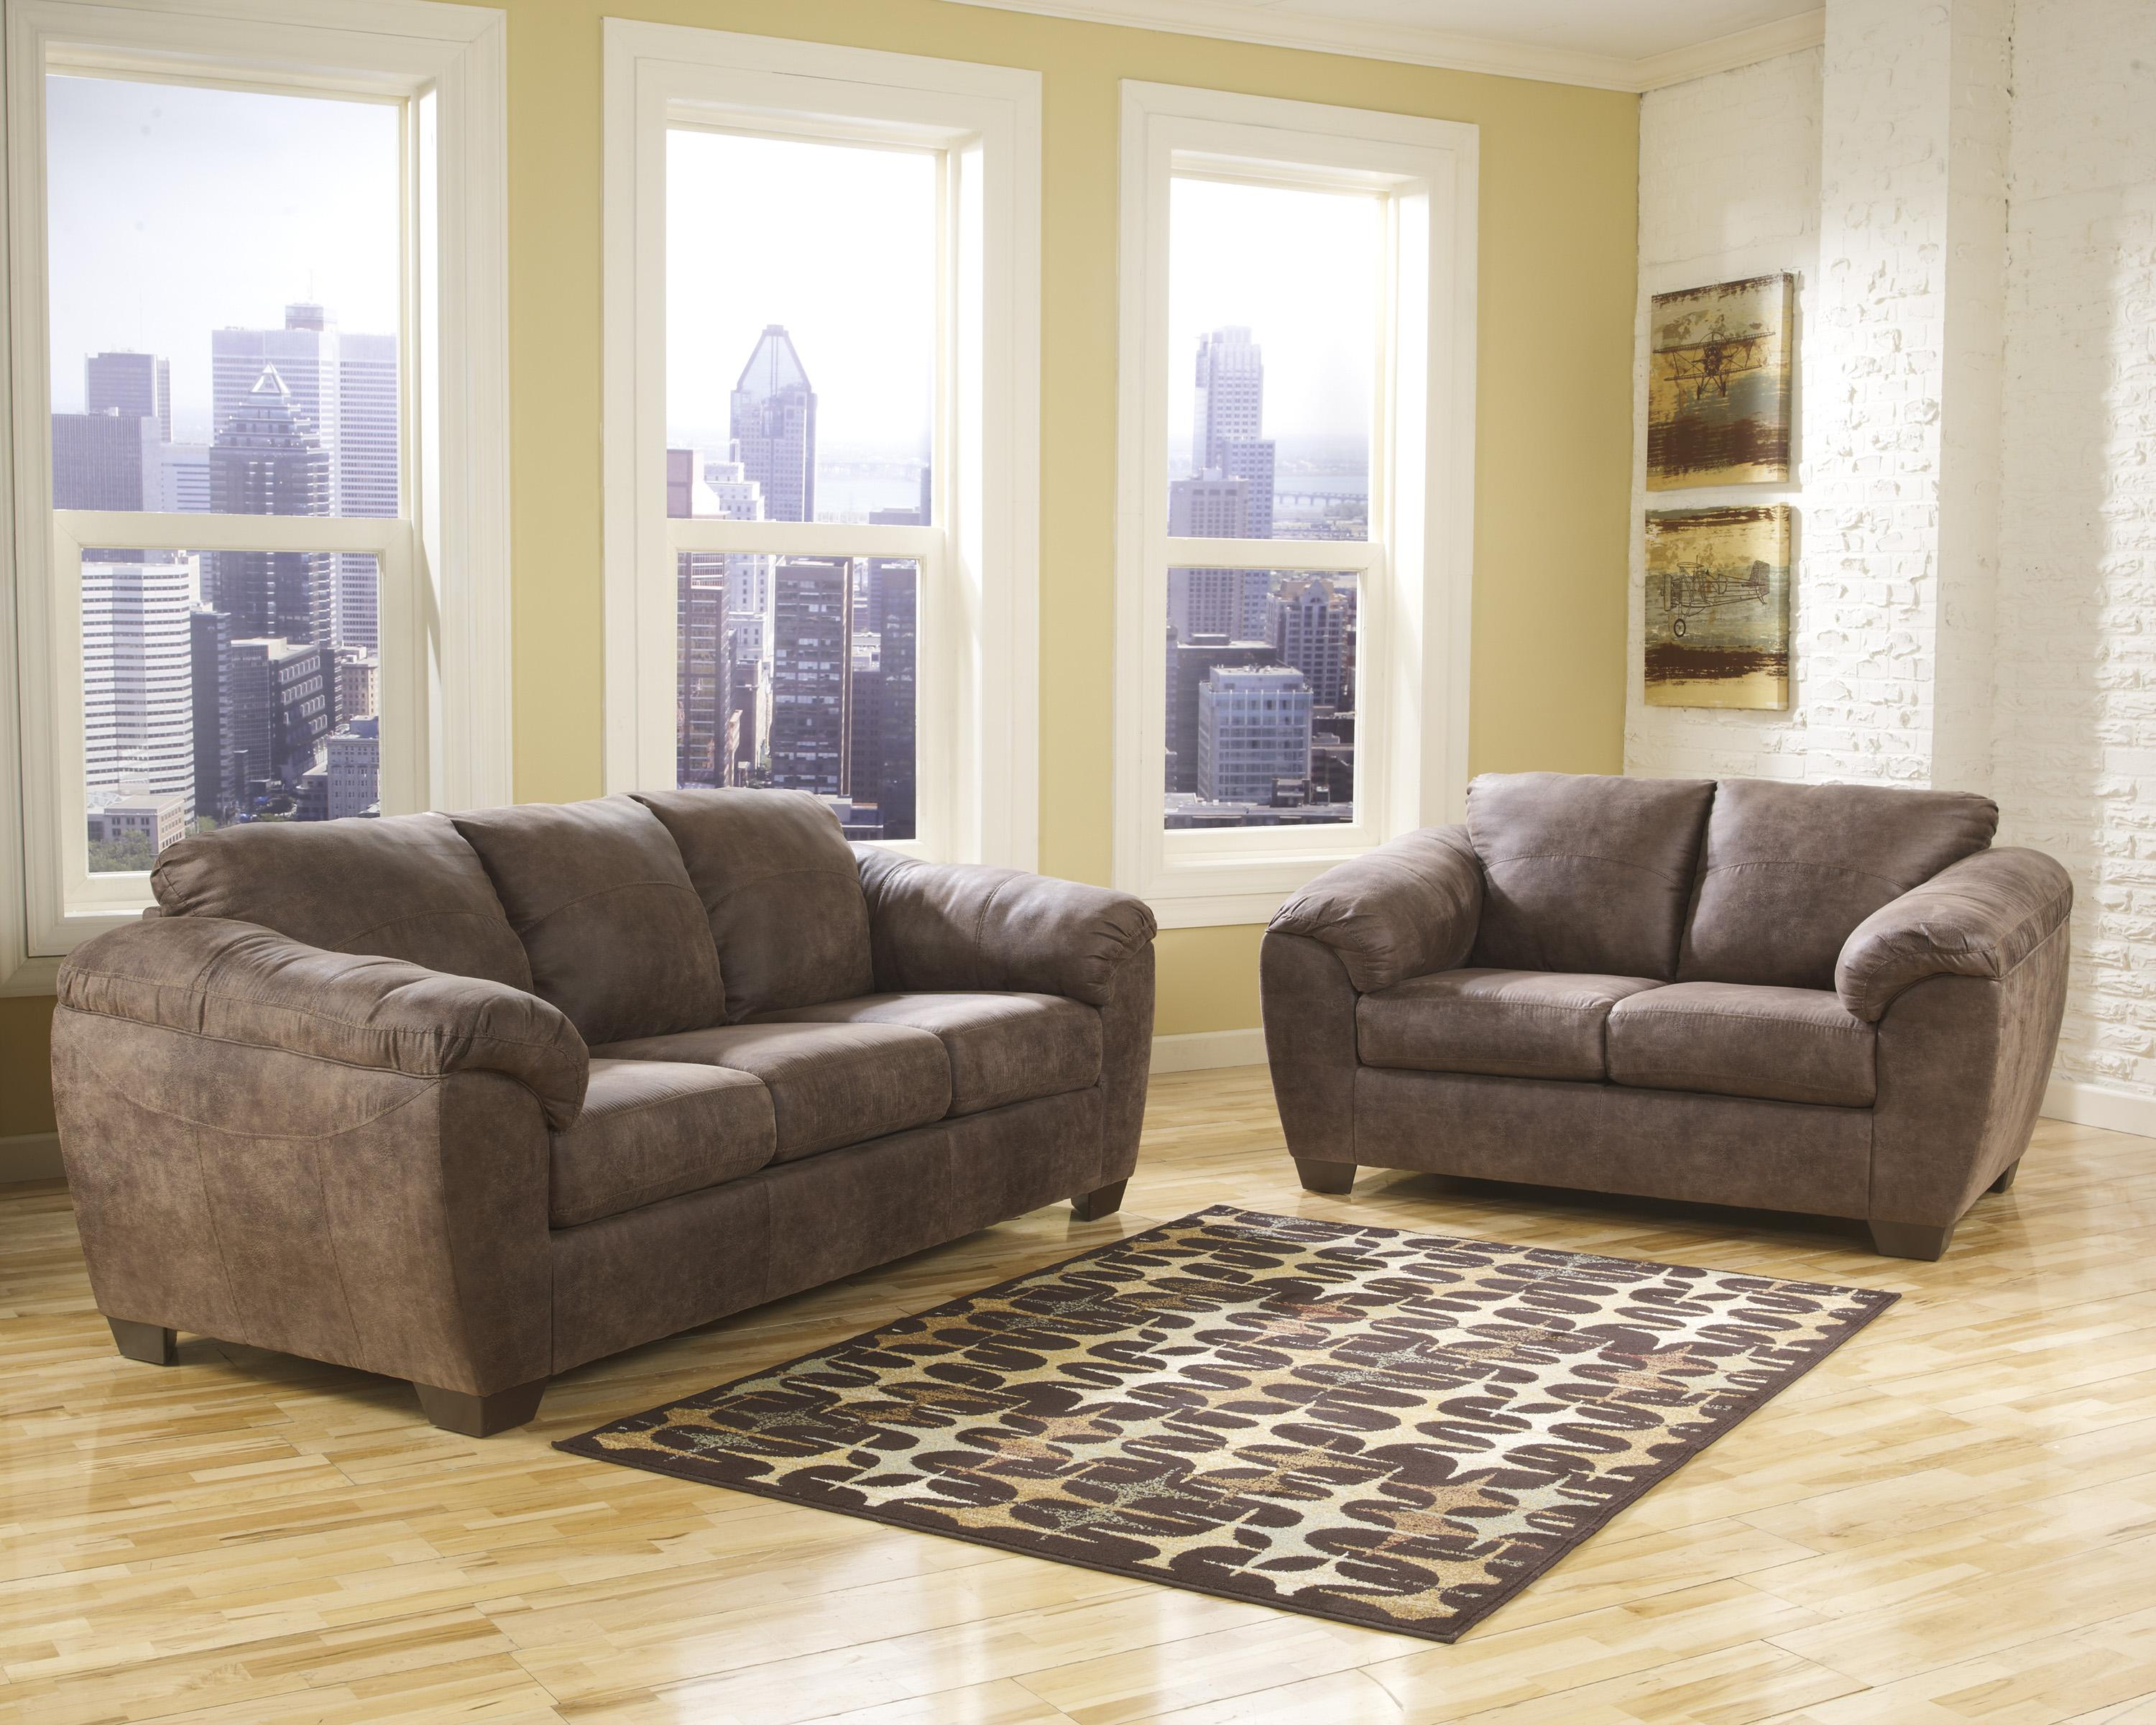 Ashley (Signature Design) Jathan - Mocha Stationary Living Room Group - Item Number: 43600 Living Room Group 1